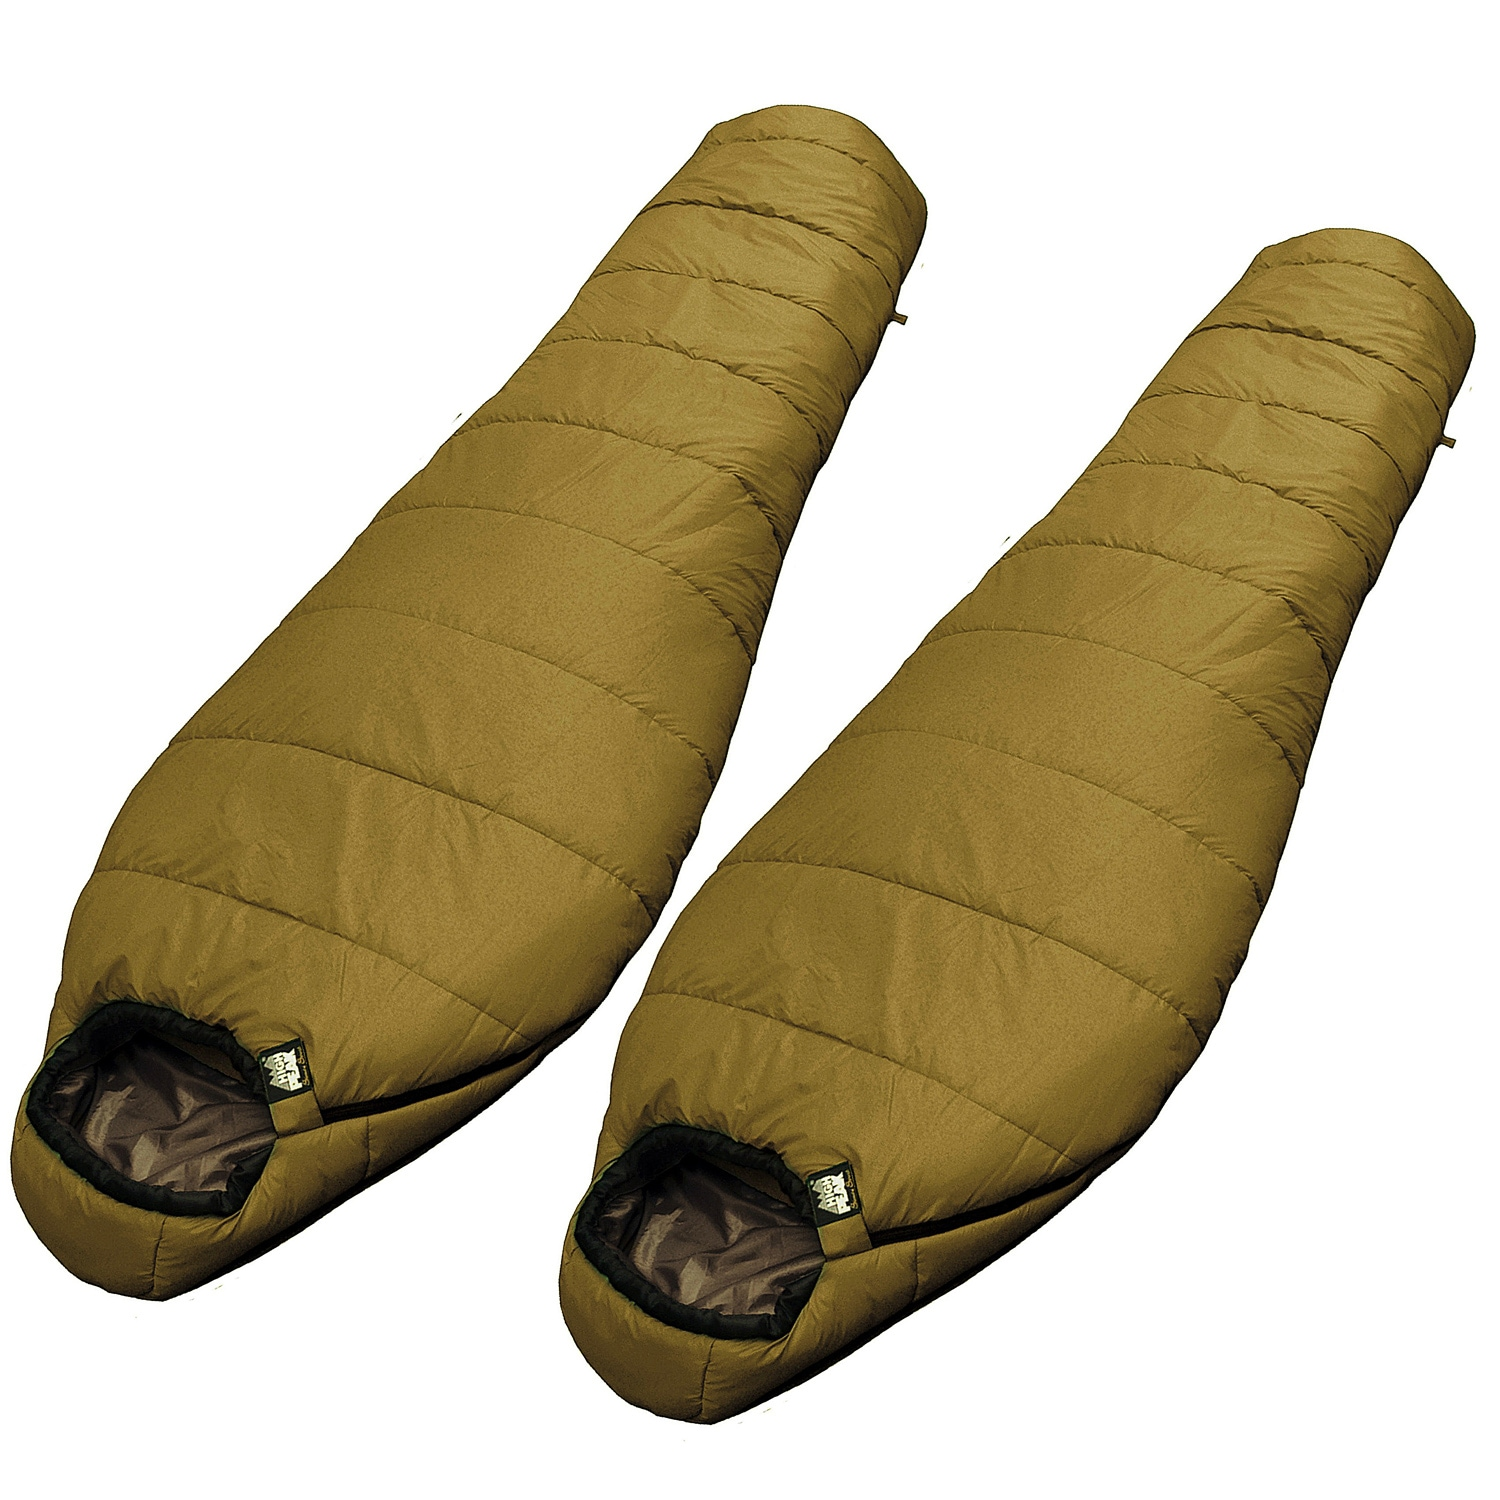 Alpinizmo by High Peak USA Summit Sleeping Bag (Set of 2)